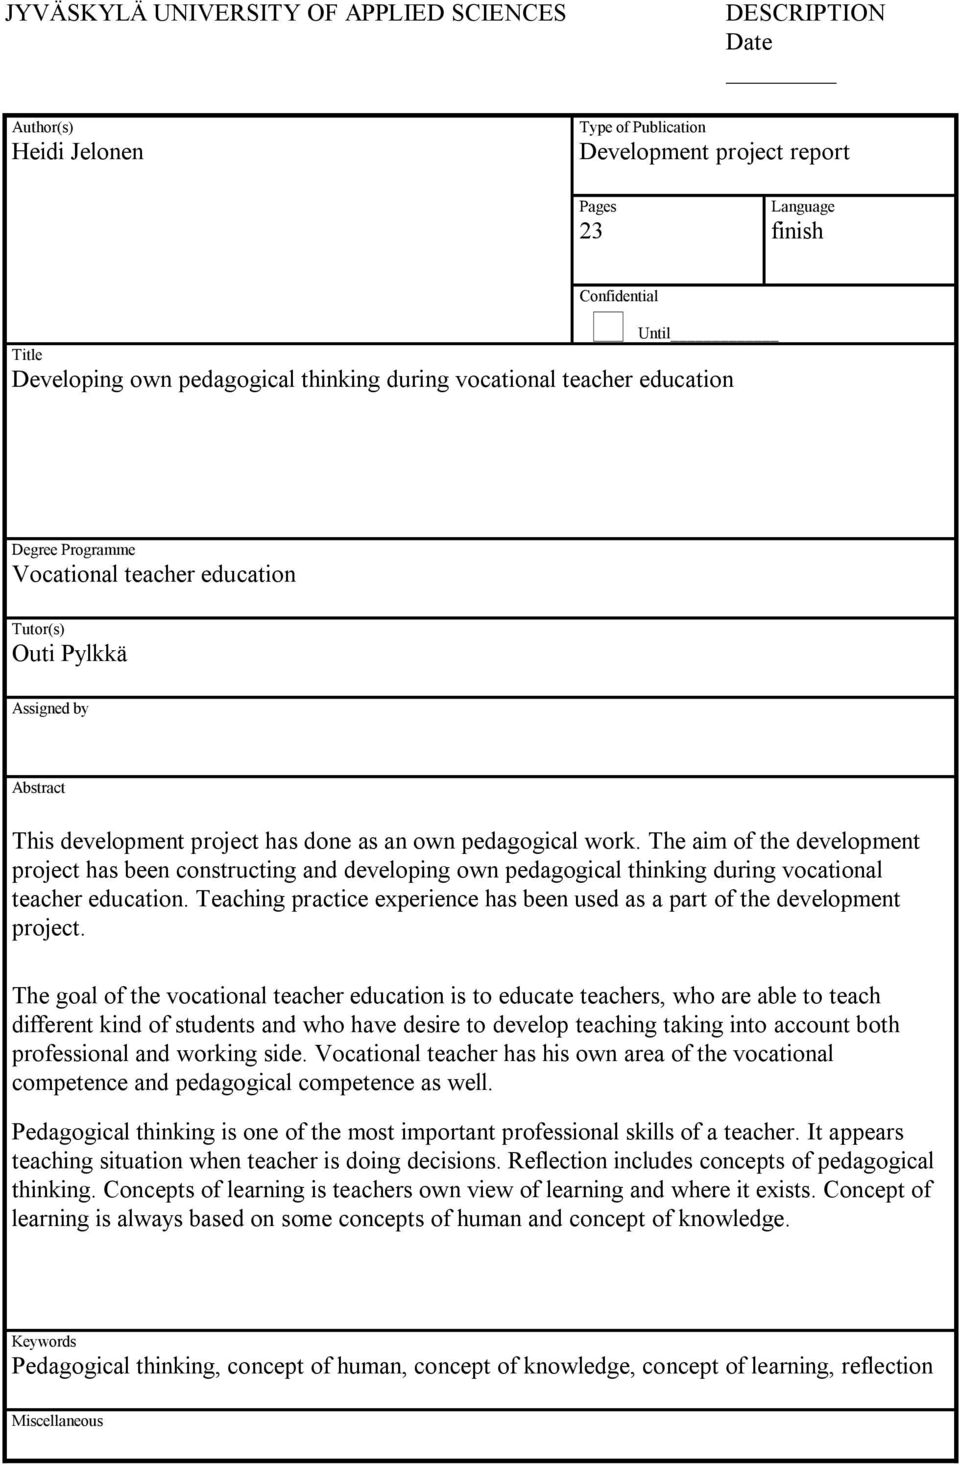 pedagogical work. The aim of the development project has been constructing and developing own pedagogical thinking during vocational teacher education.